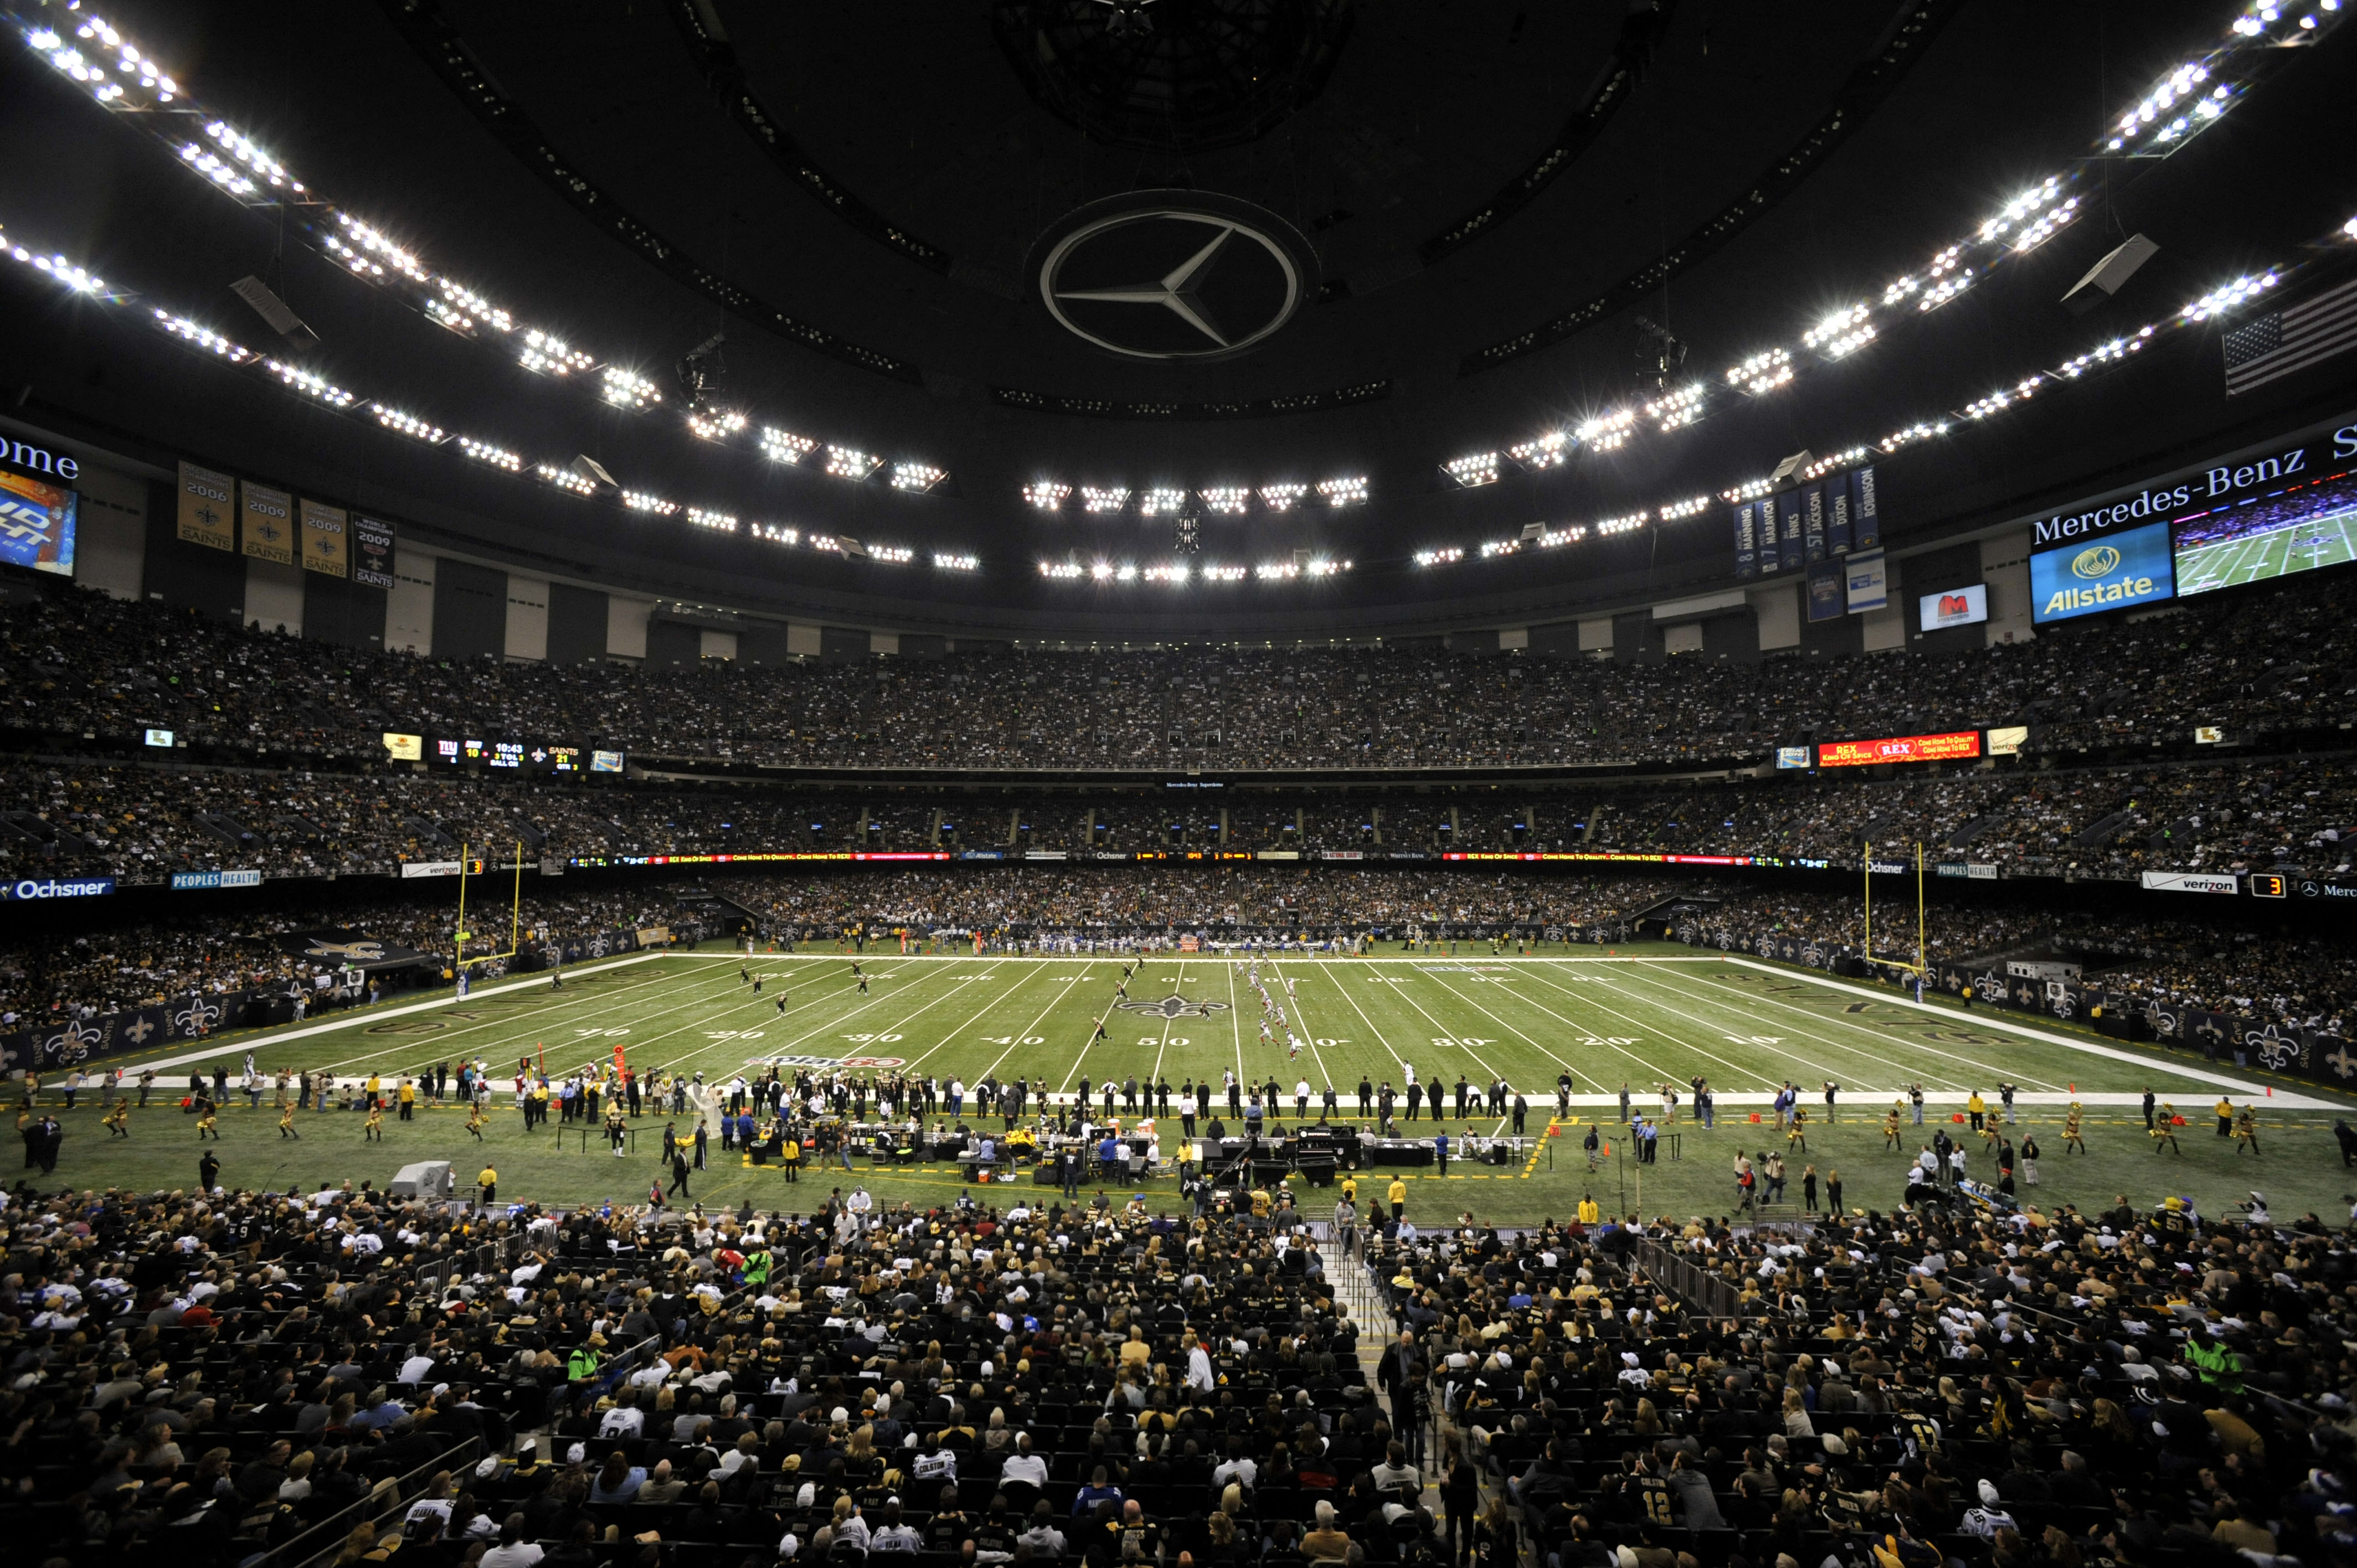 Superdome wallpaper wallpapersafari for Mercedes benz dome new orleans seating chart